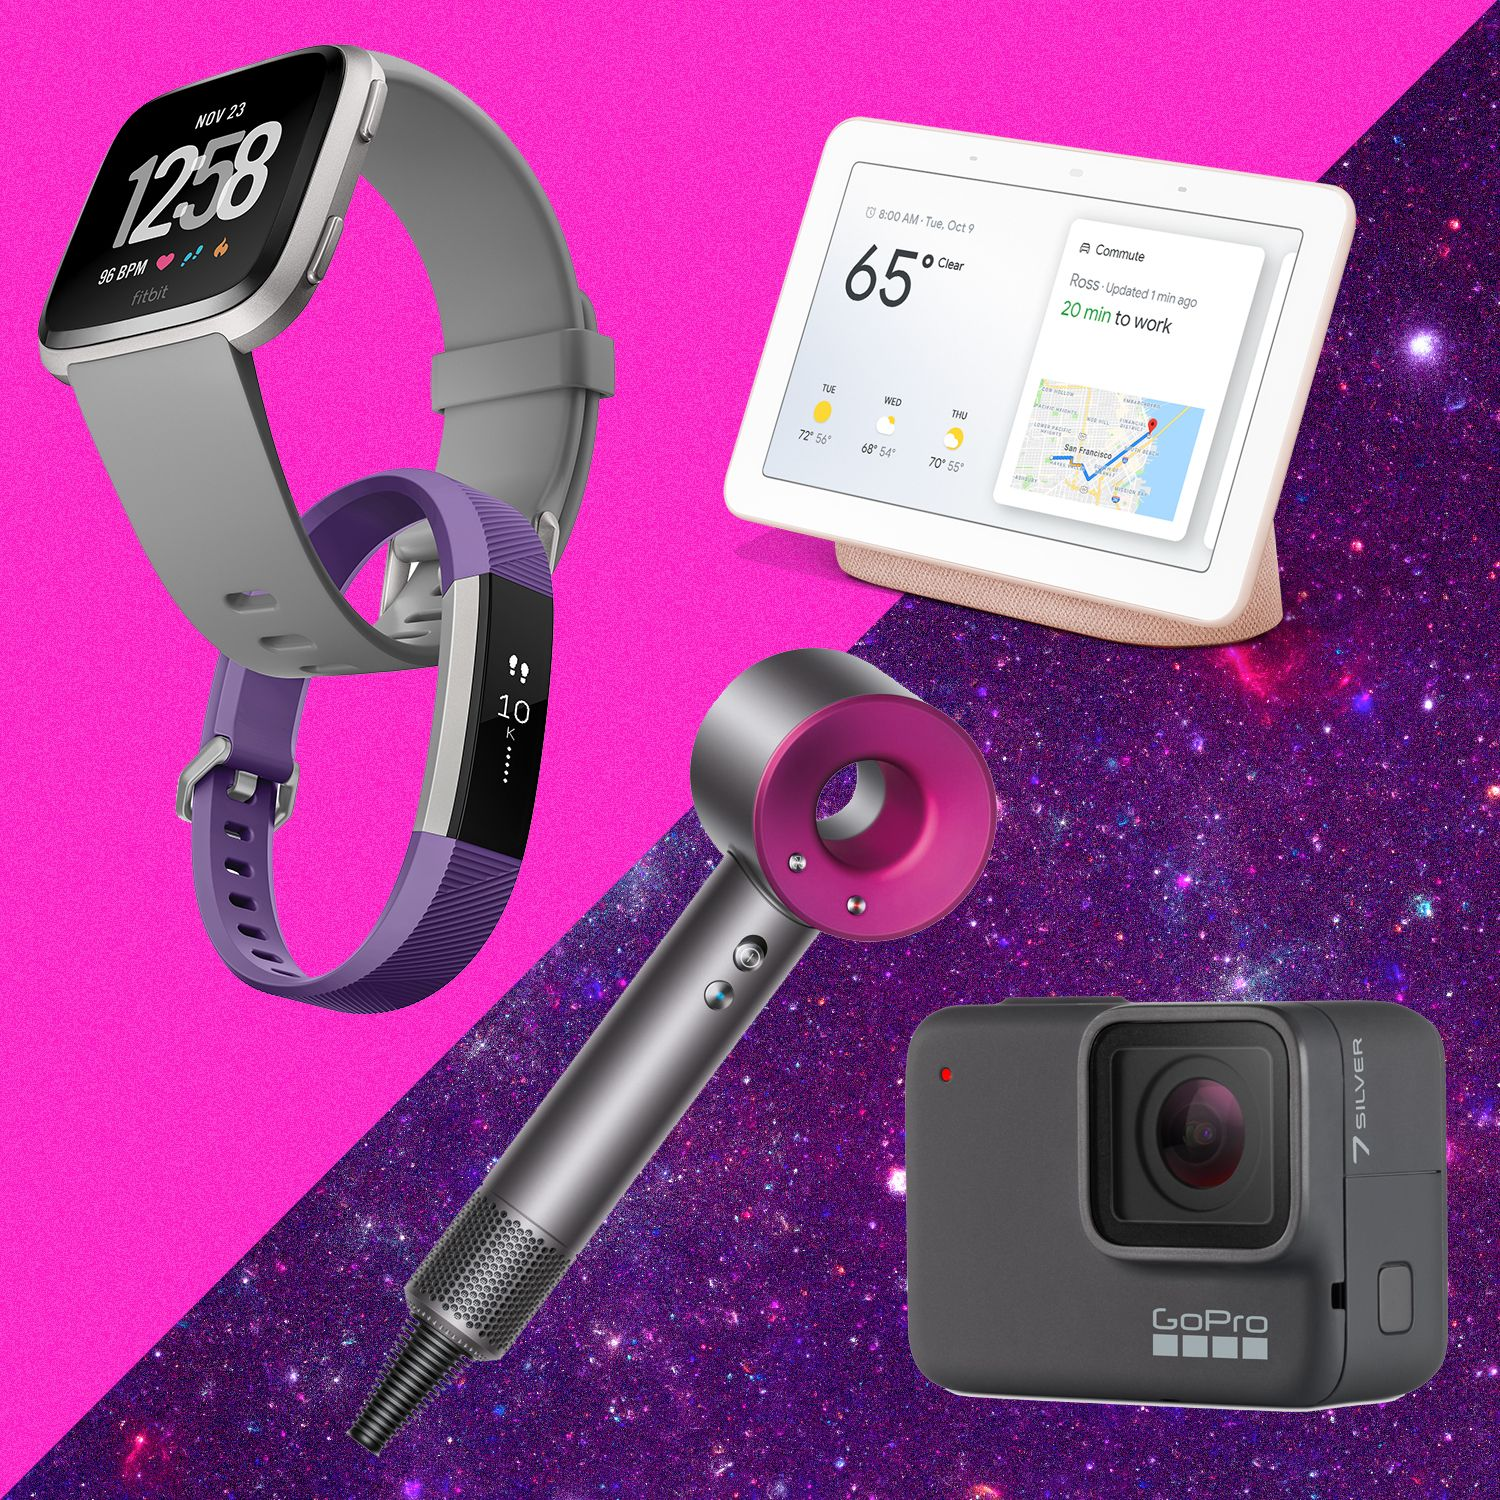 The Best Holiday Gifts for Tech Lovers